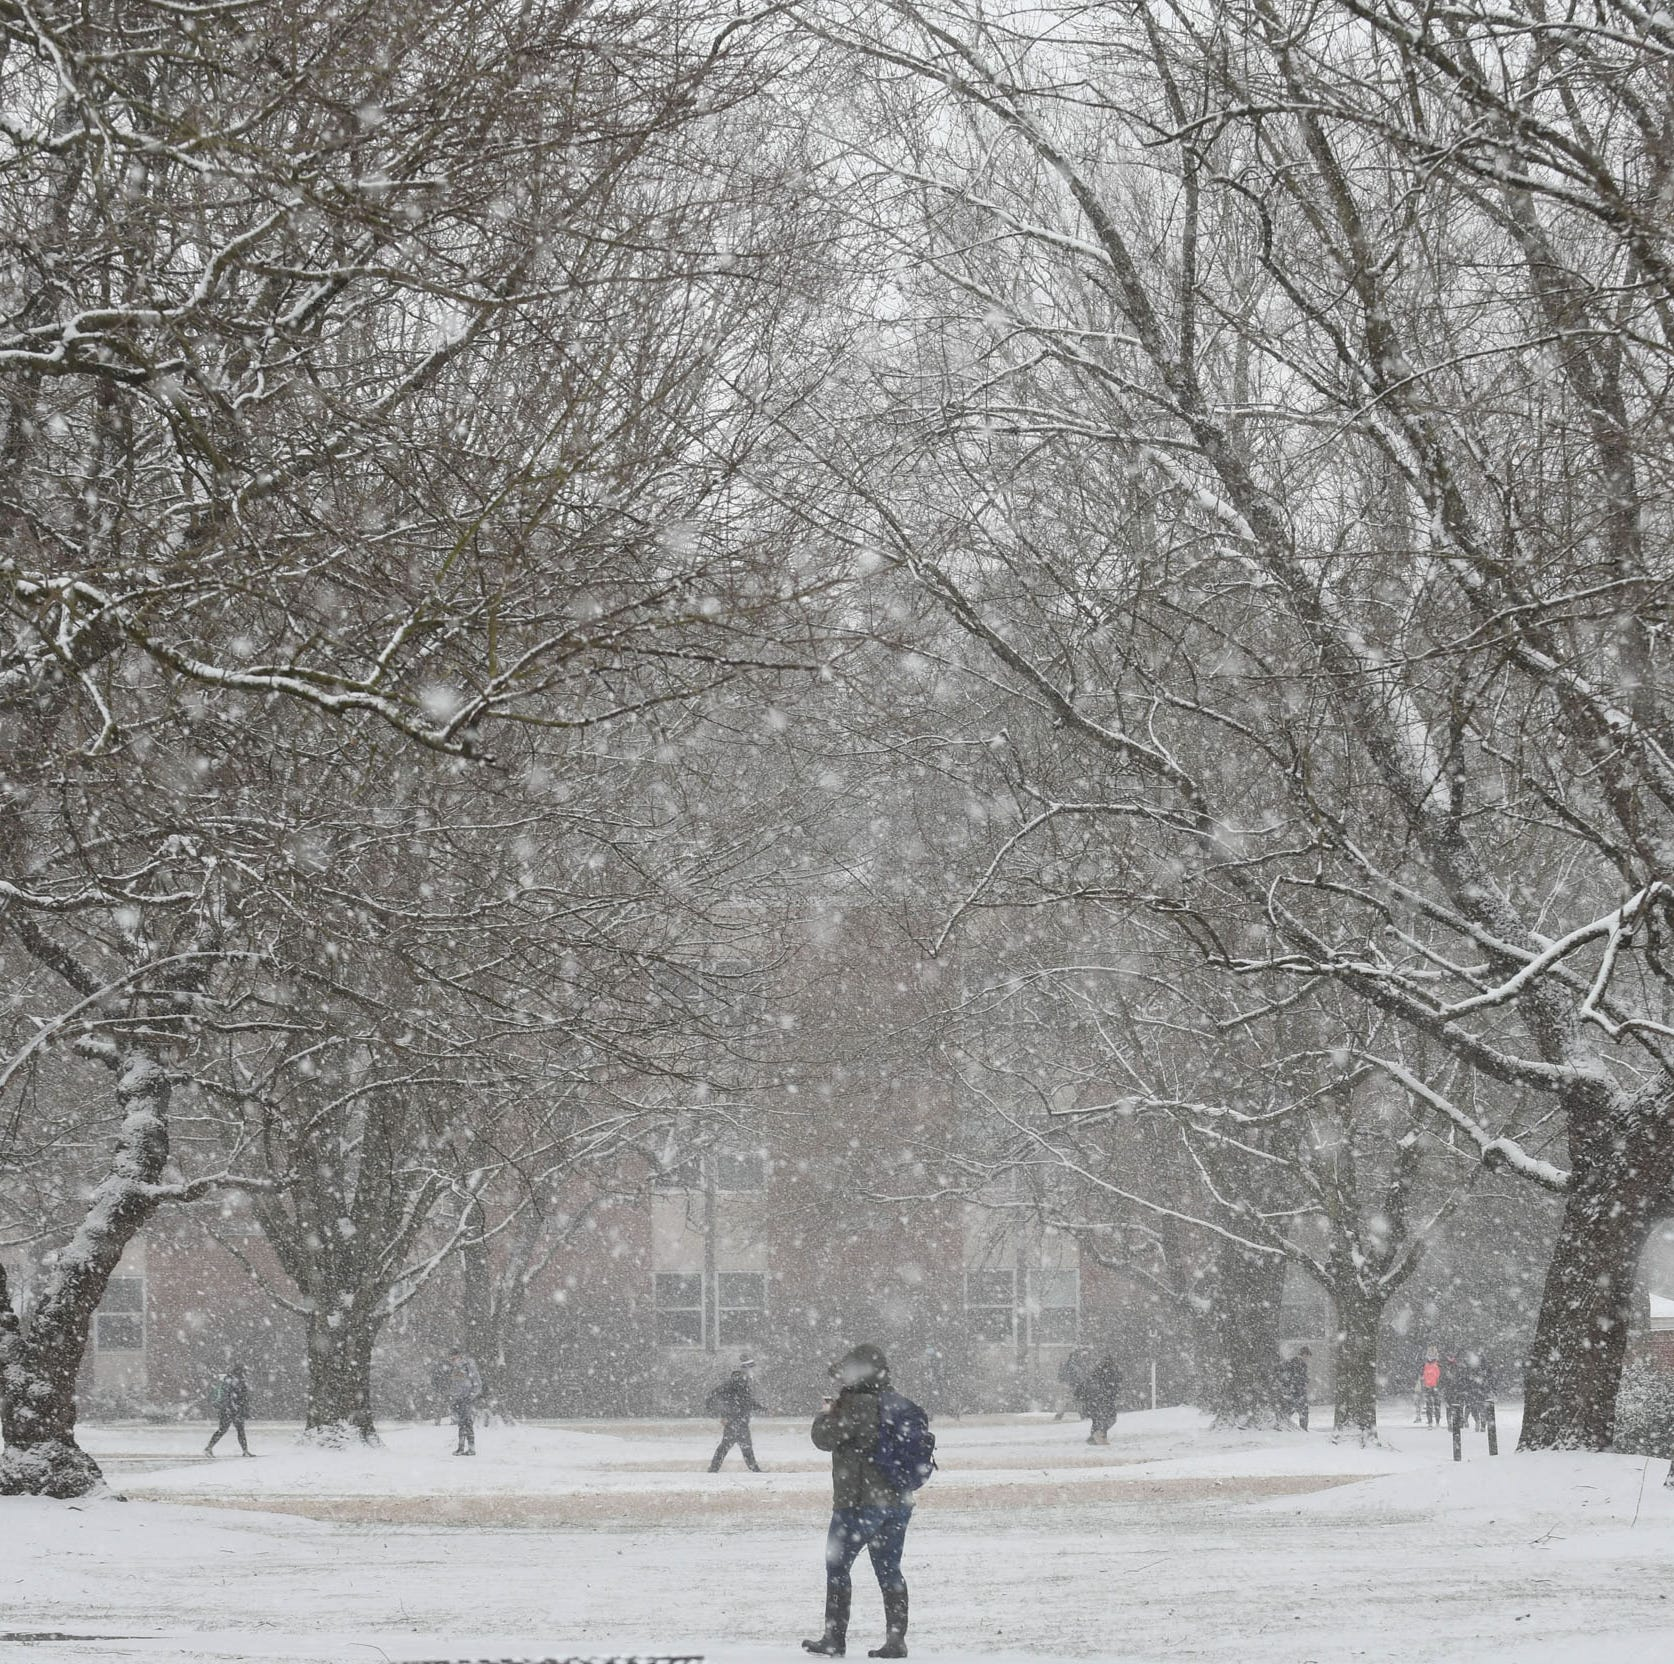 Snow, freezing rain expected in parts of Maryland overnight